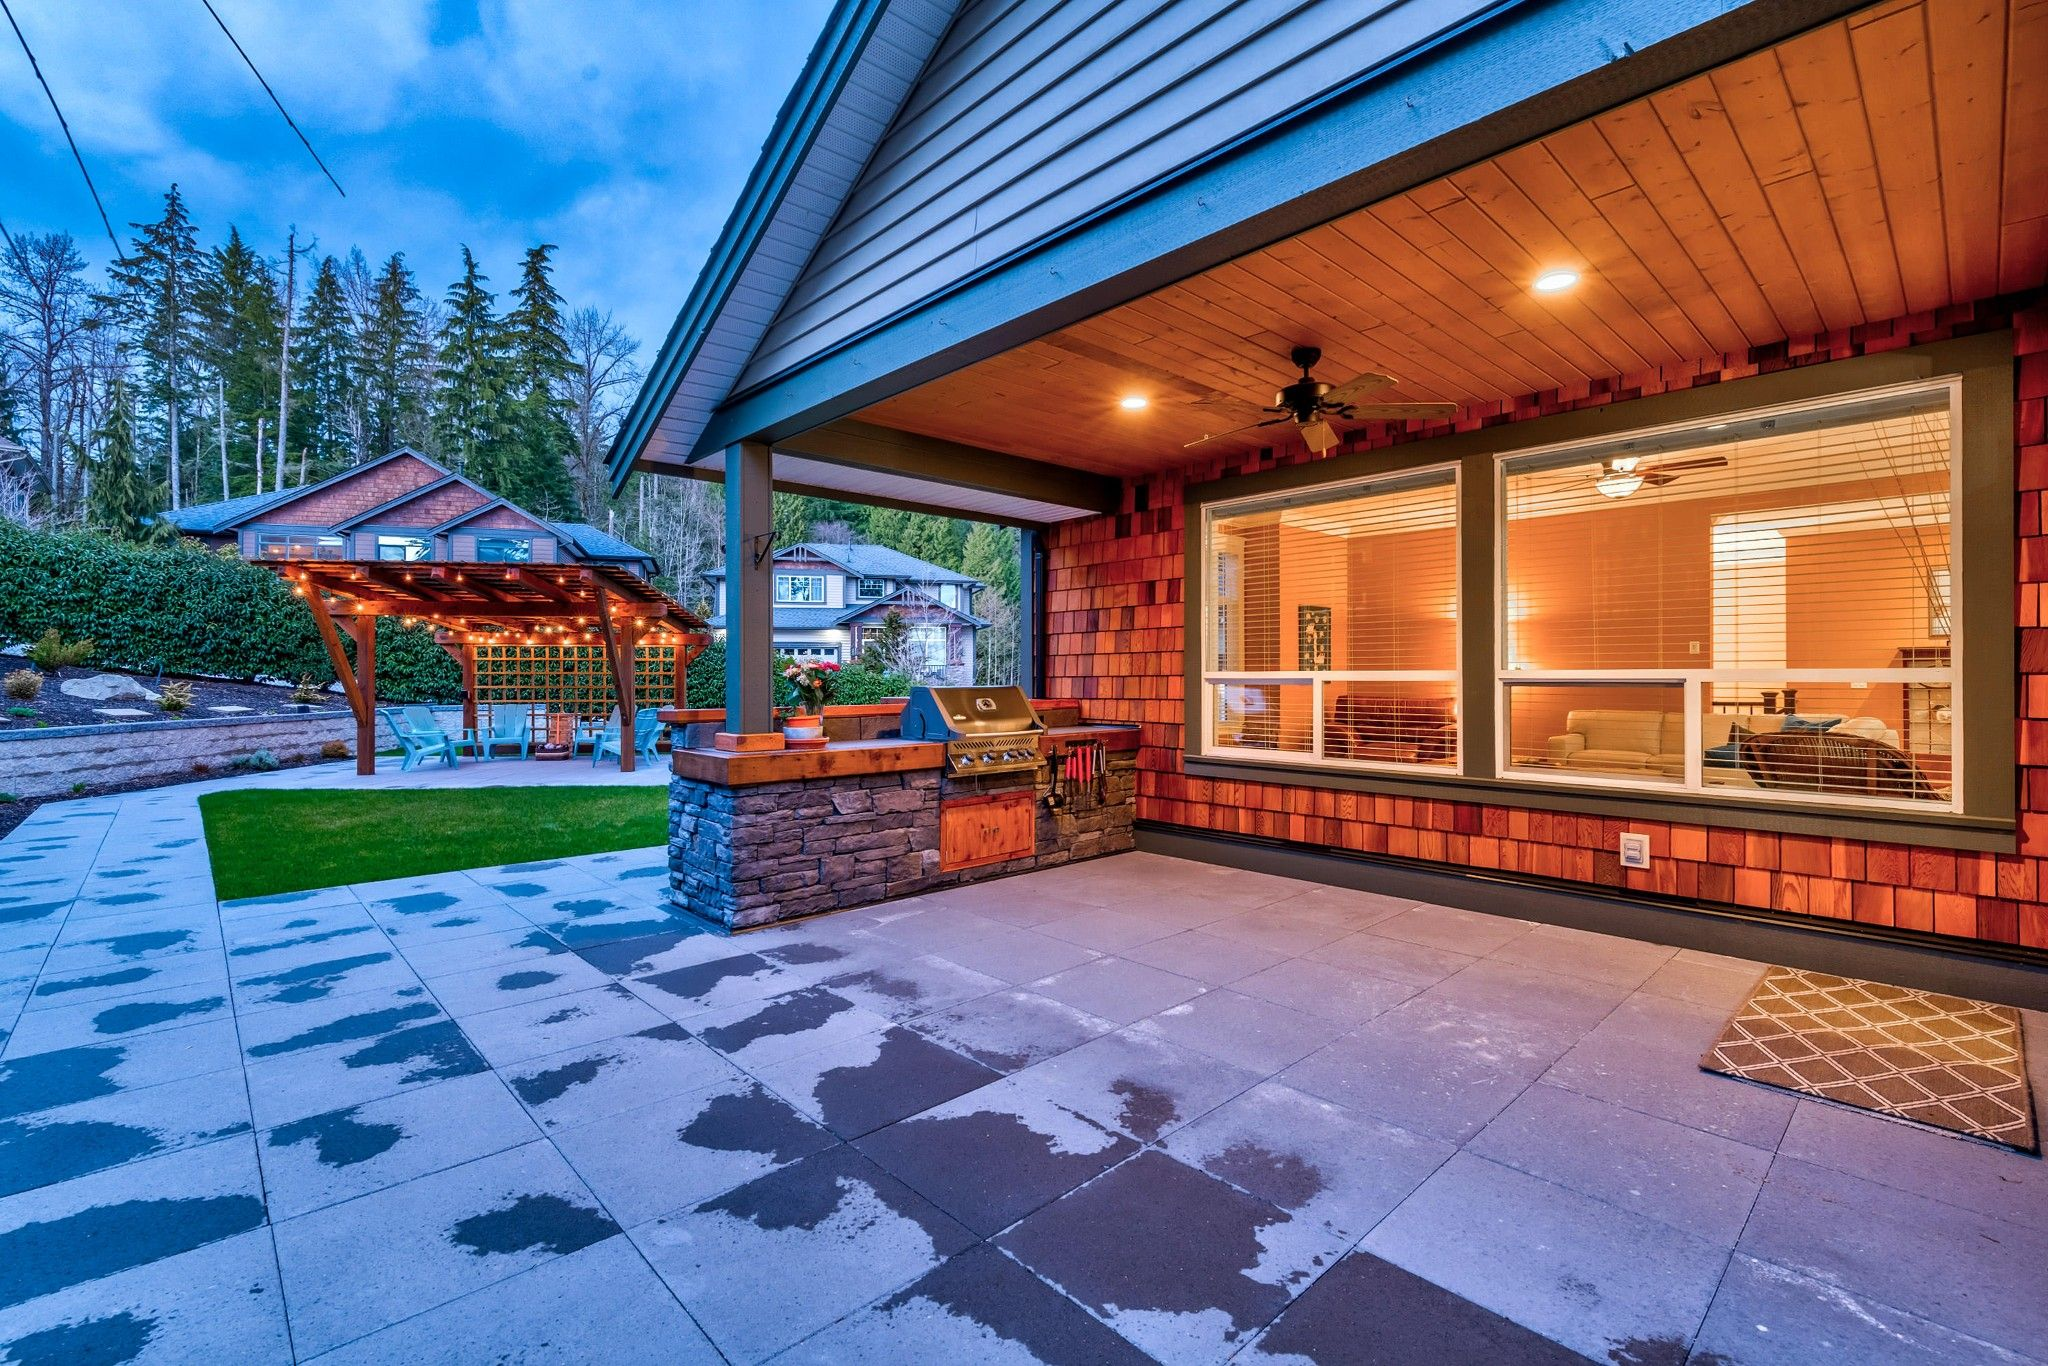 Photo 24: Photos: 16 13210 SHOESMITH CRESCENT in Maple Ridge: Silver Valley House for sale : MLS®# R2448043